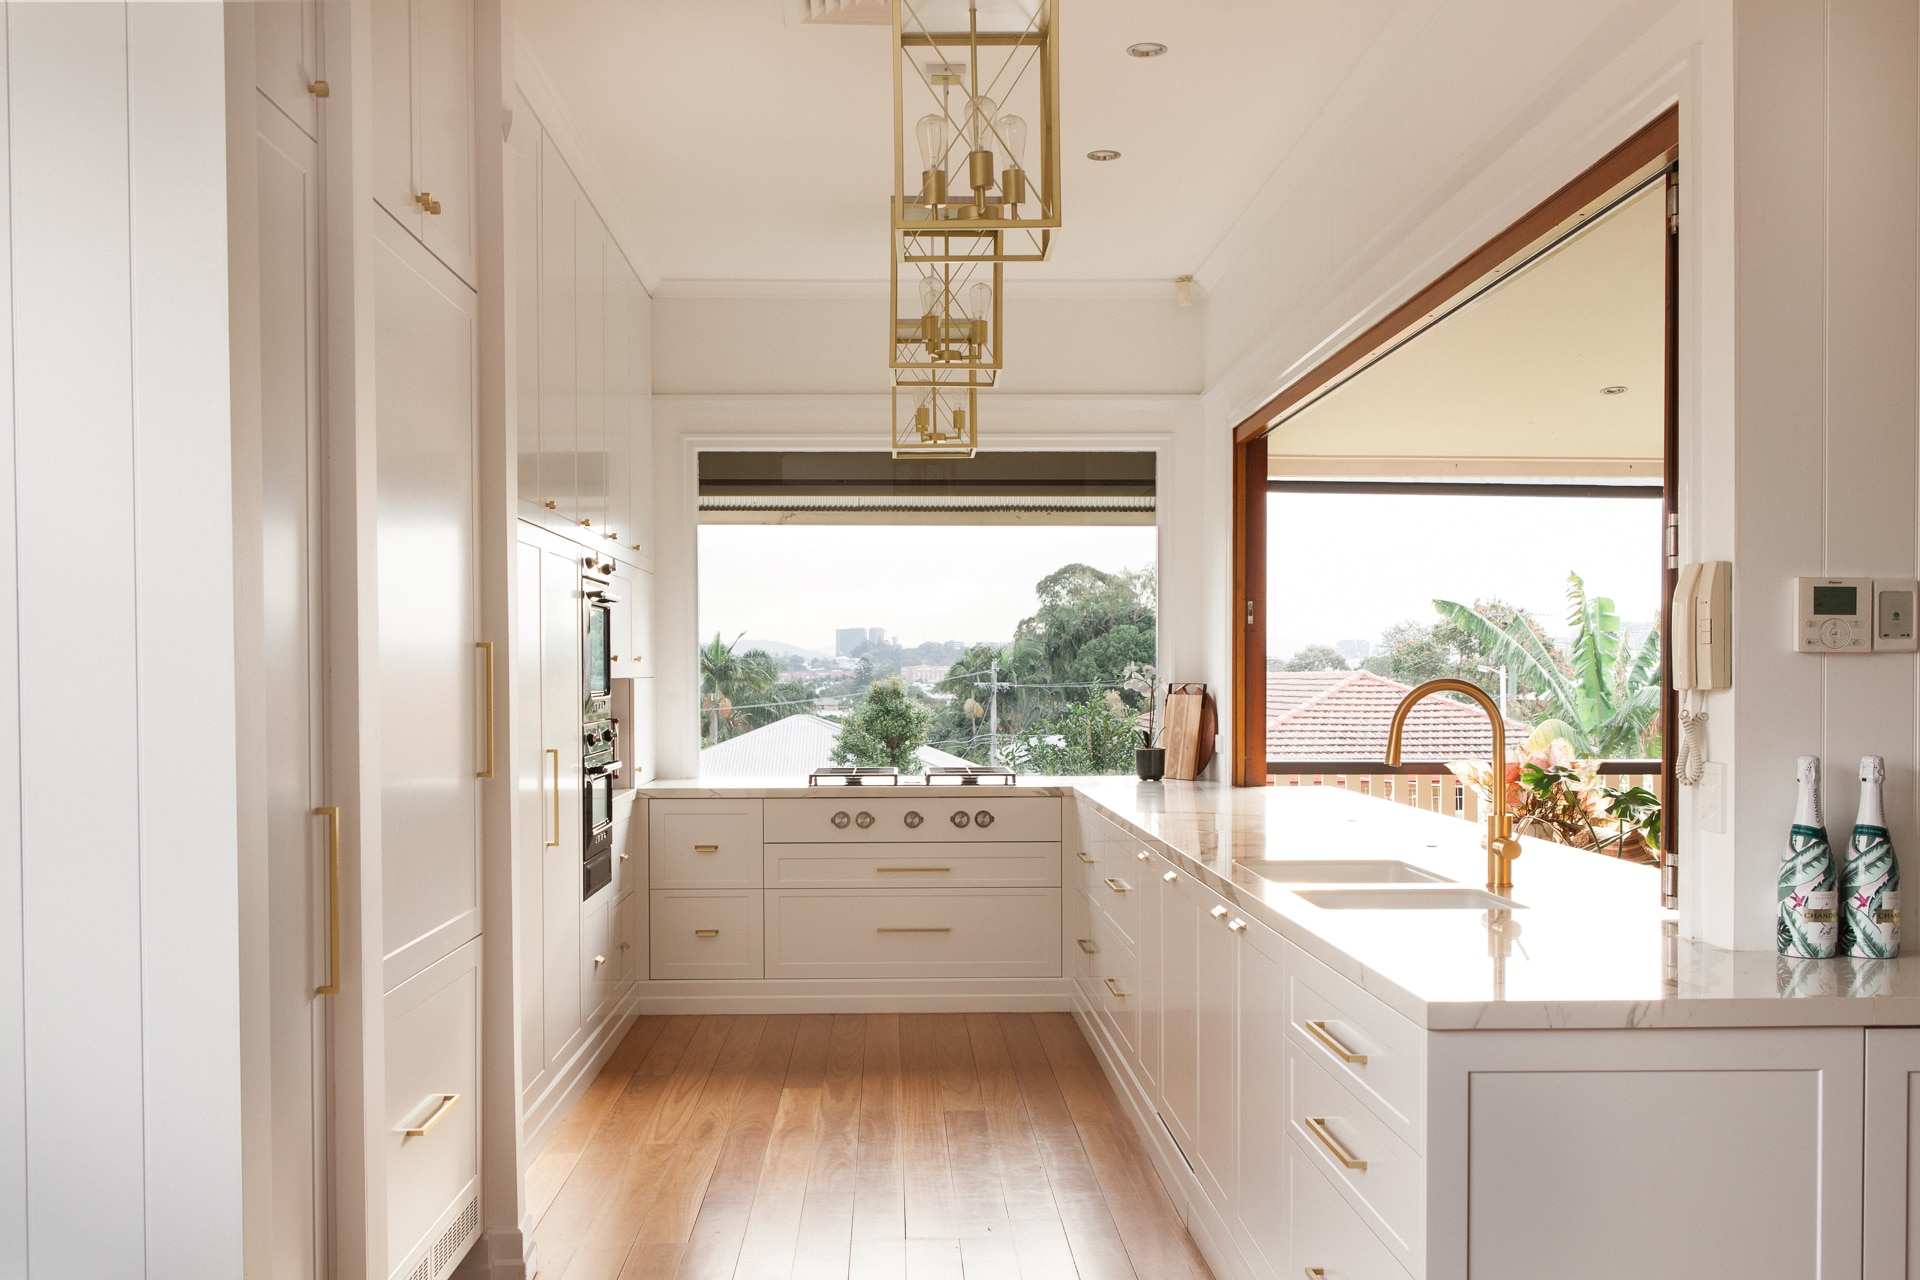 kitchen cabinet makers rustic chandelier burgess kitchens renovations designs pic 7